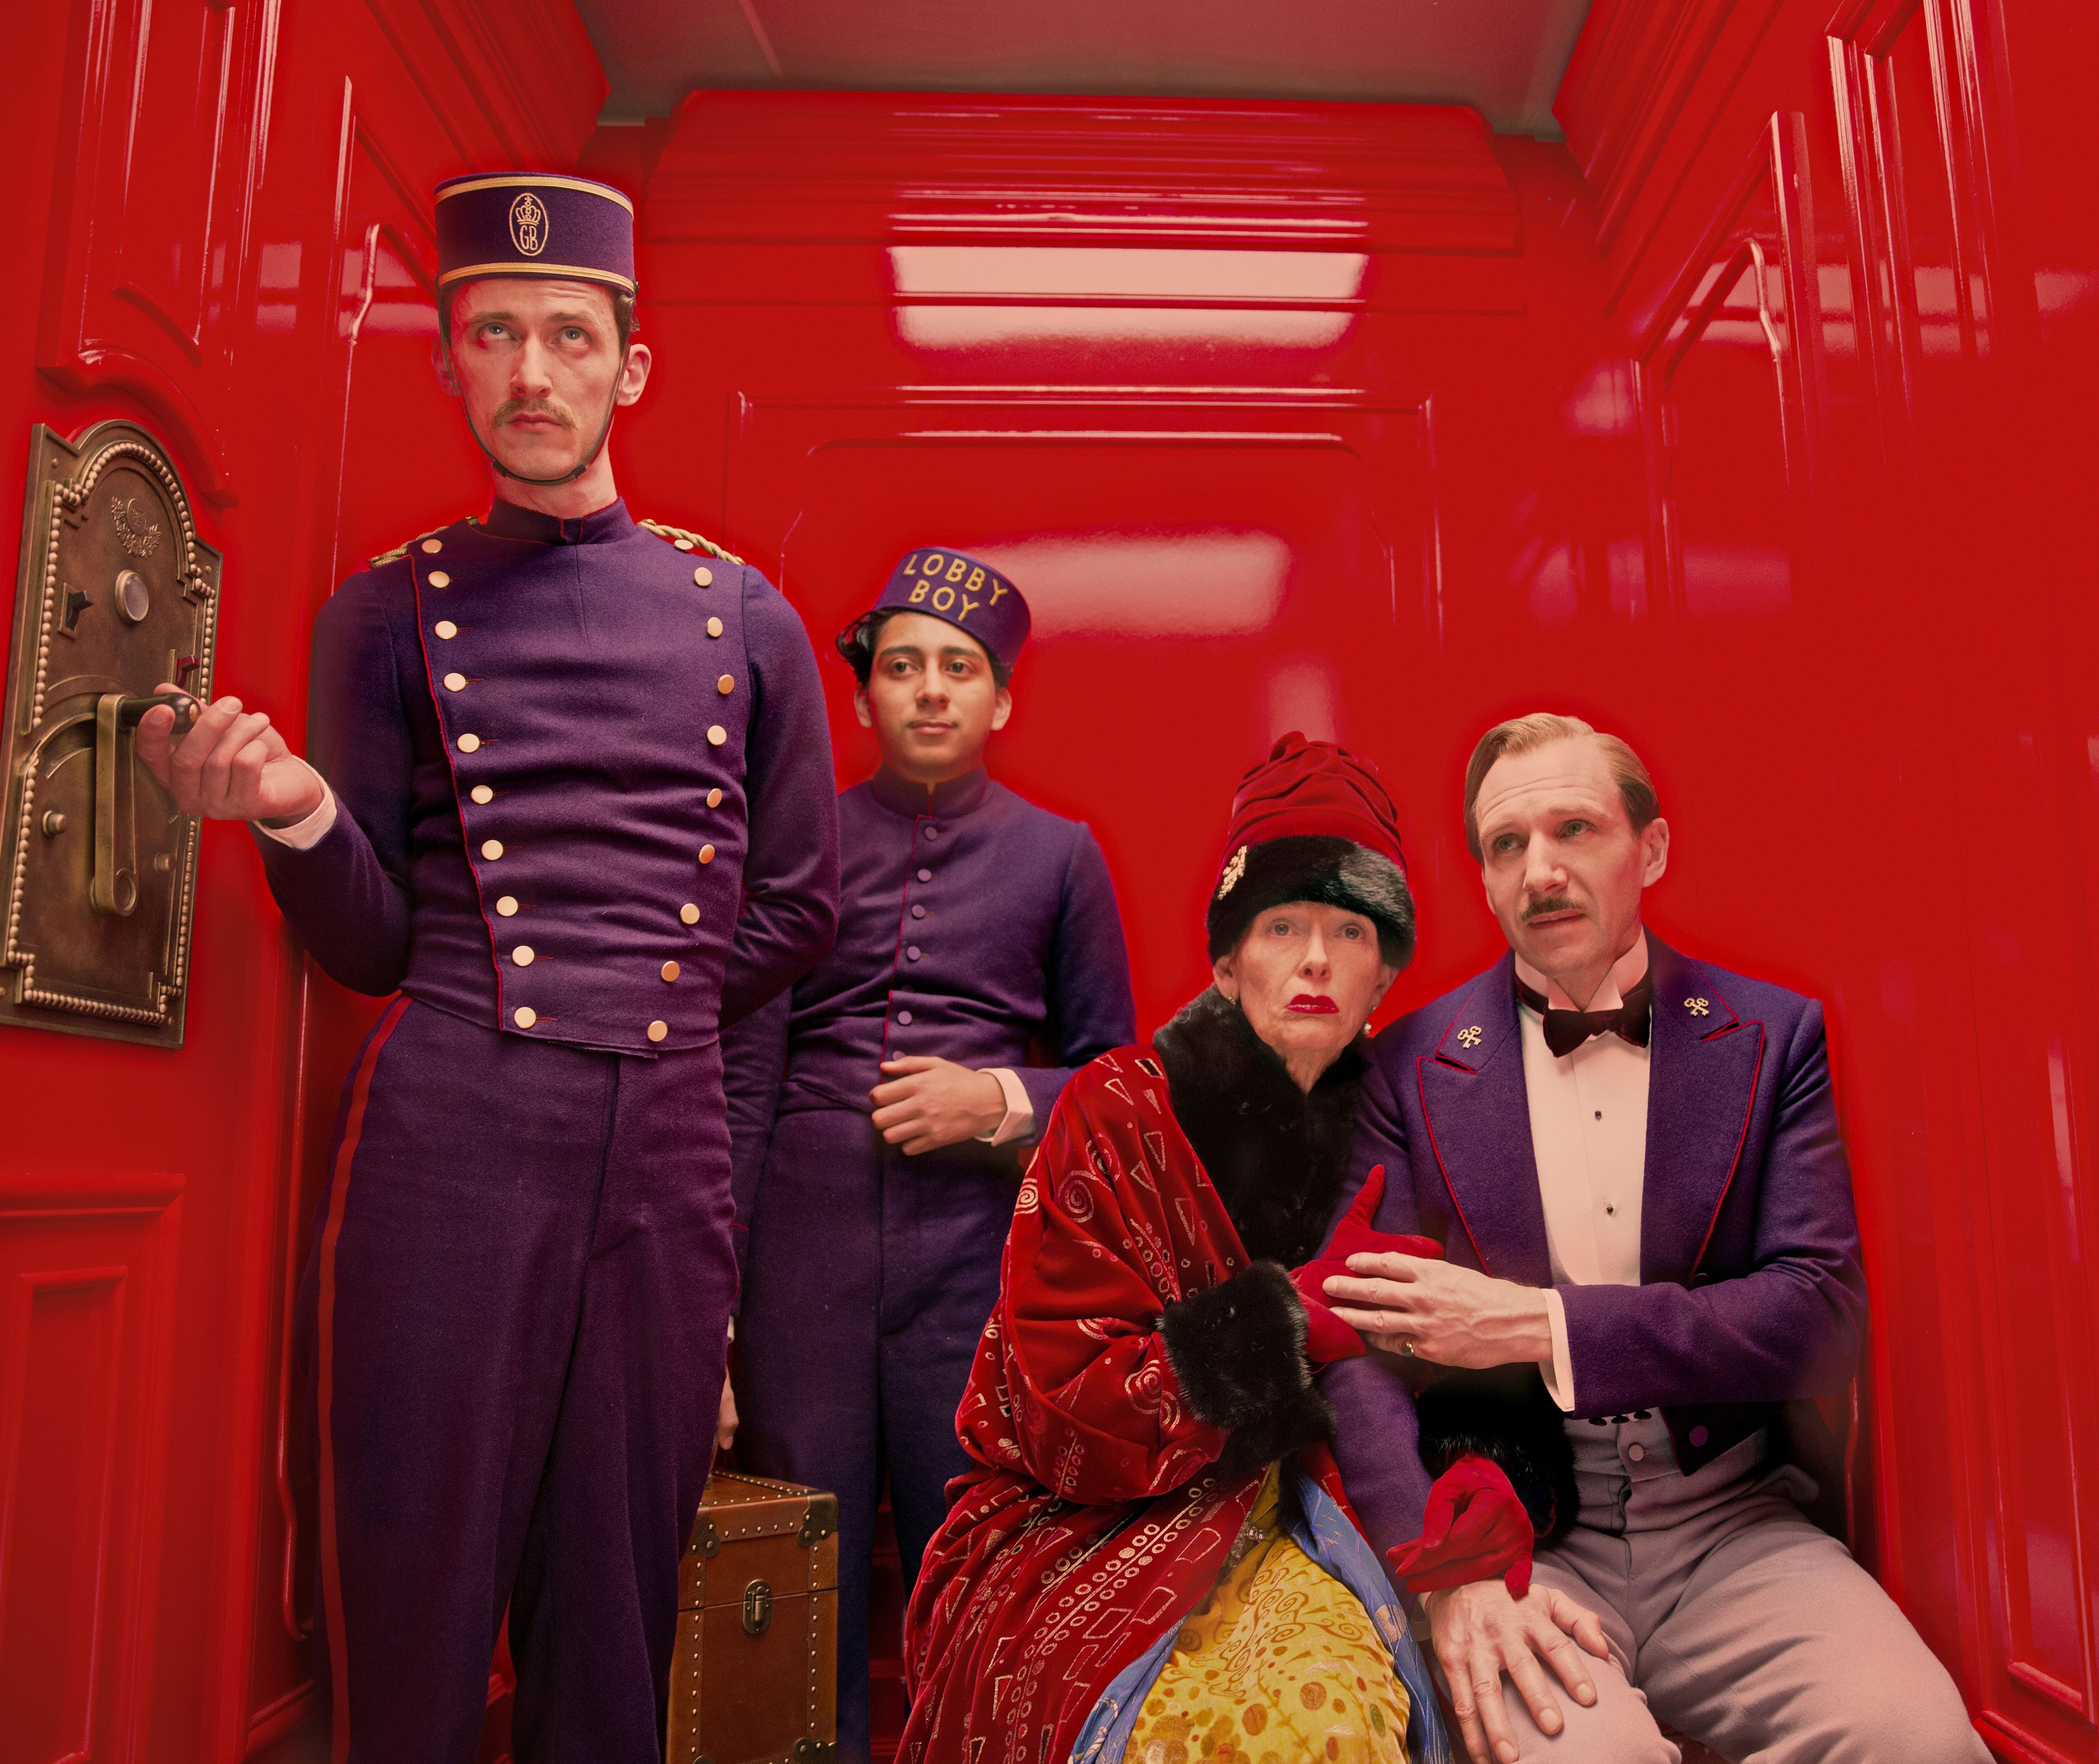 Bold colors in Wes Anderson's The Grand Budapest Hotel